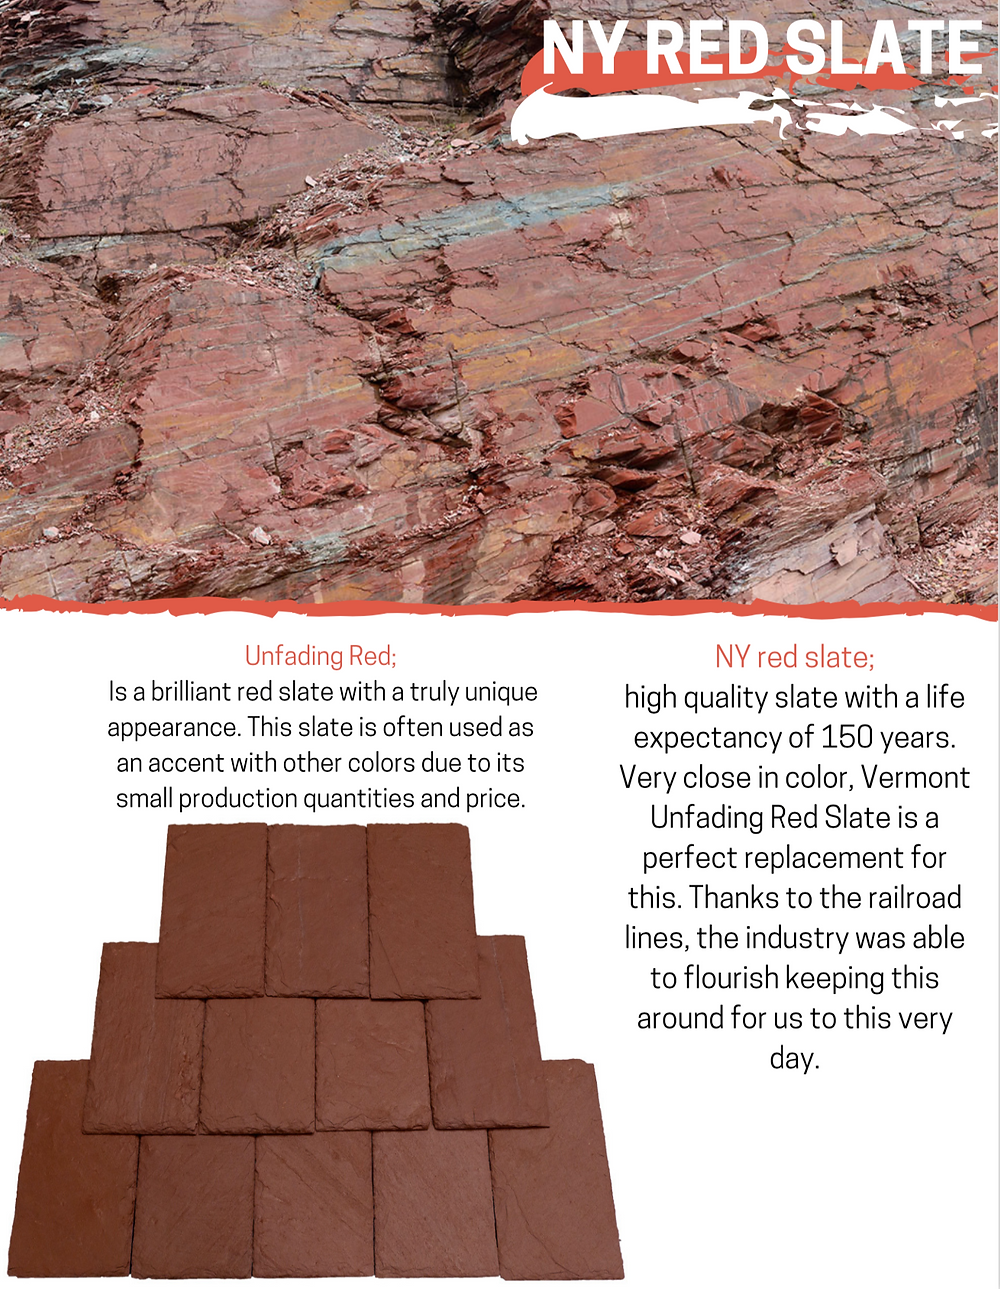 NY Red Slate - Unfading Red Slate